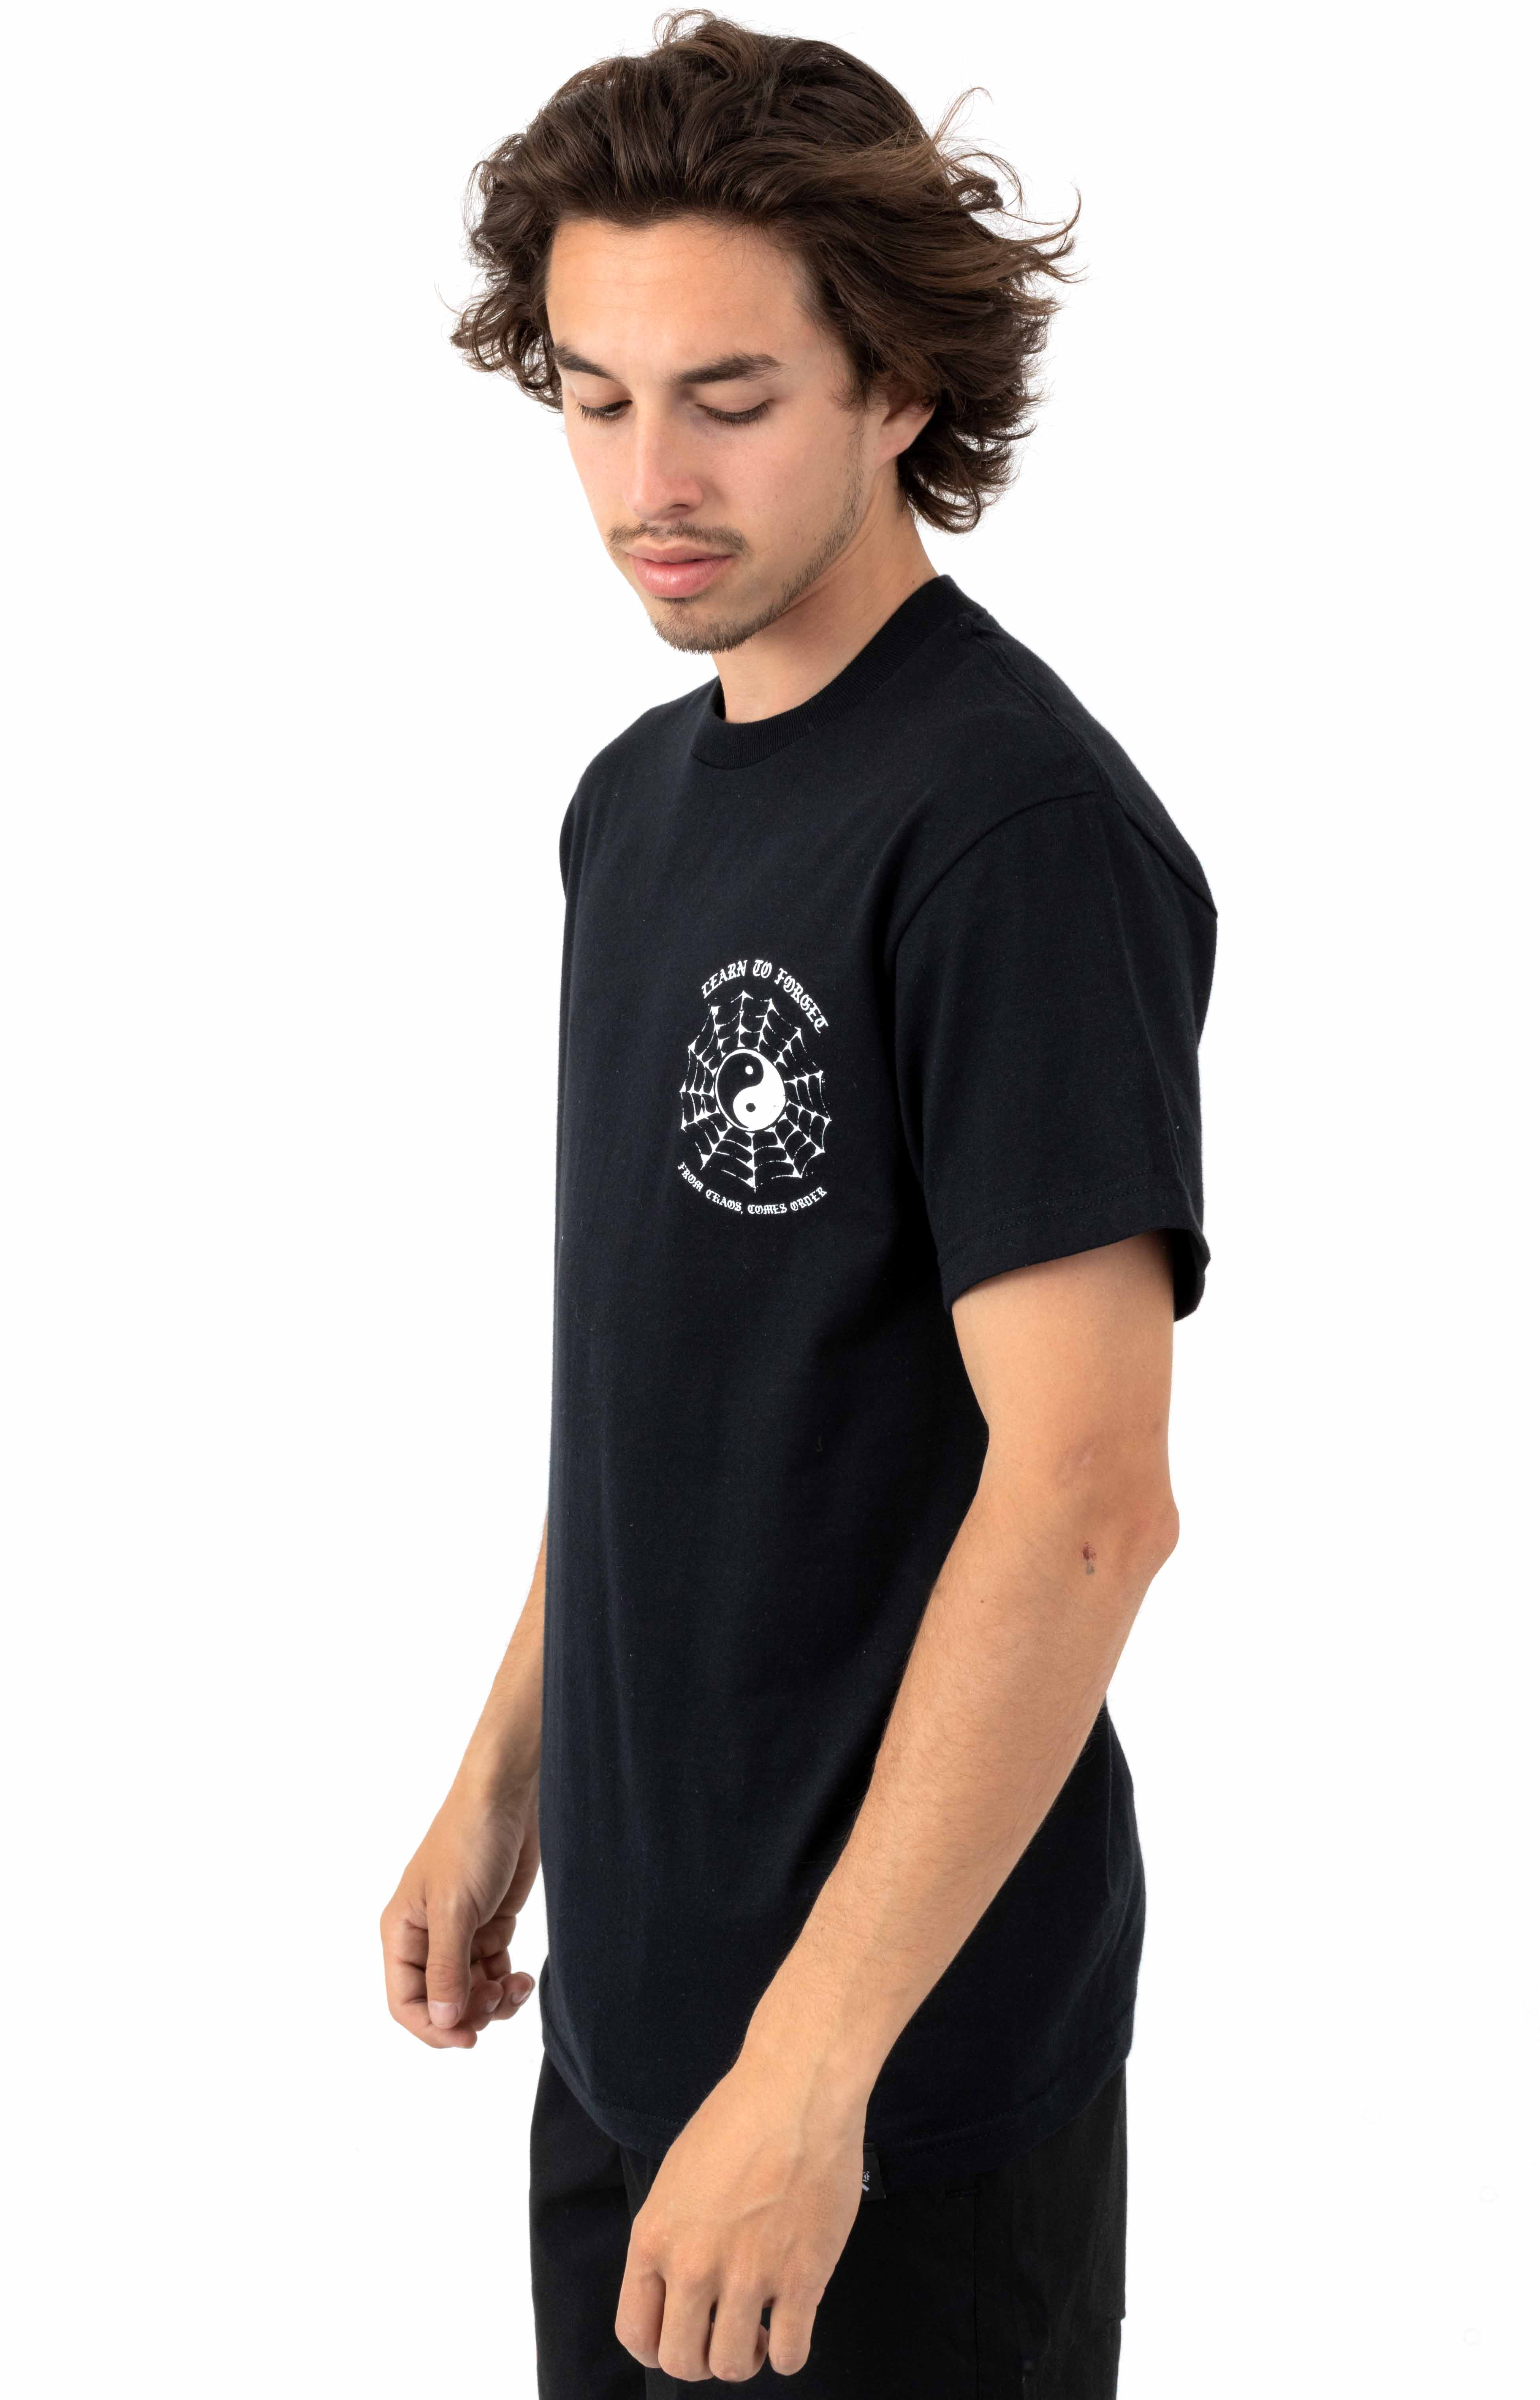 Web Of Lies T-Shirt - Black 3